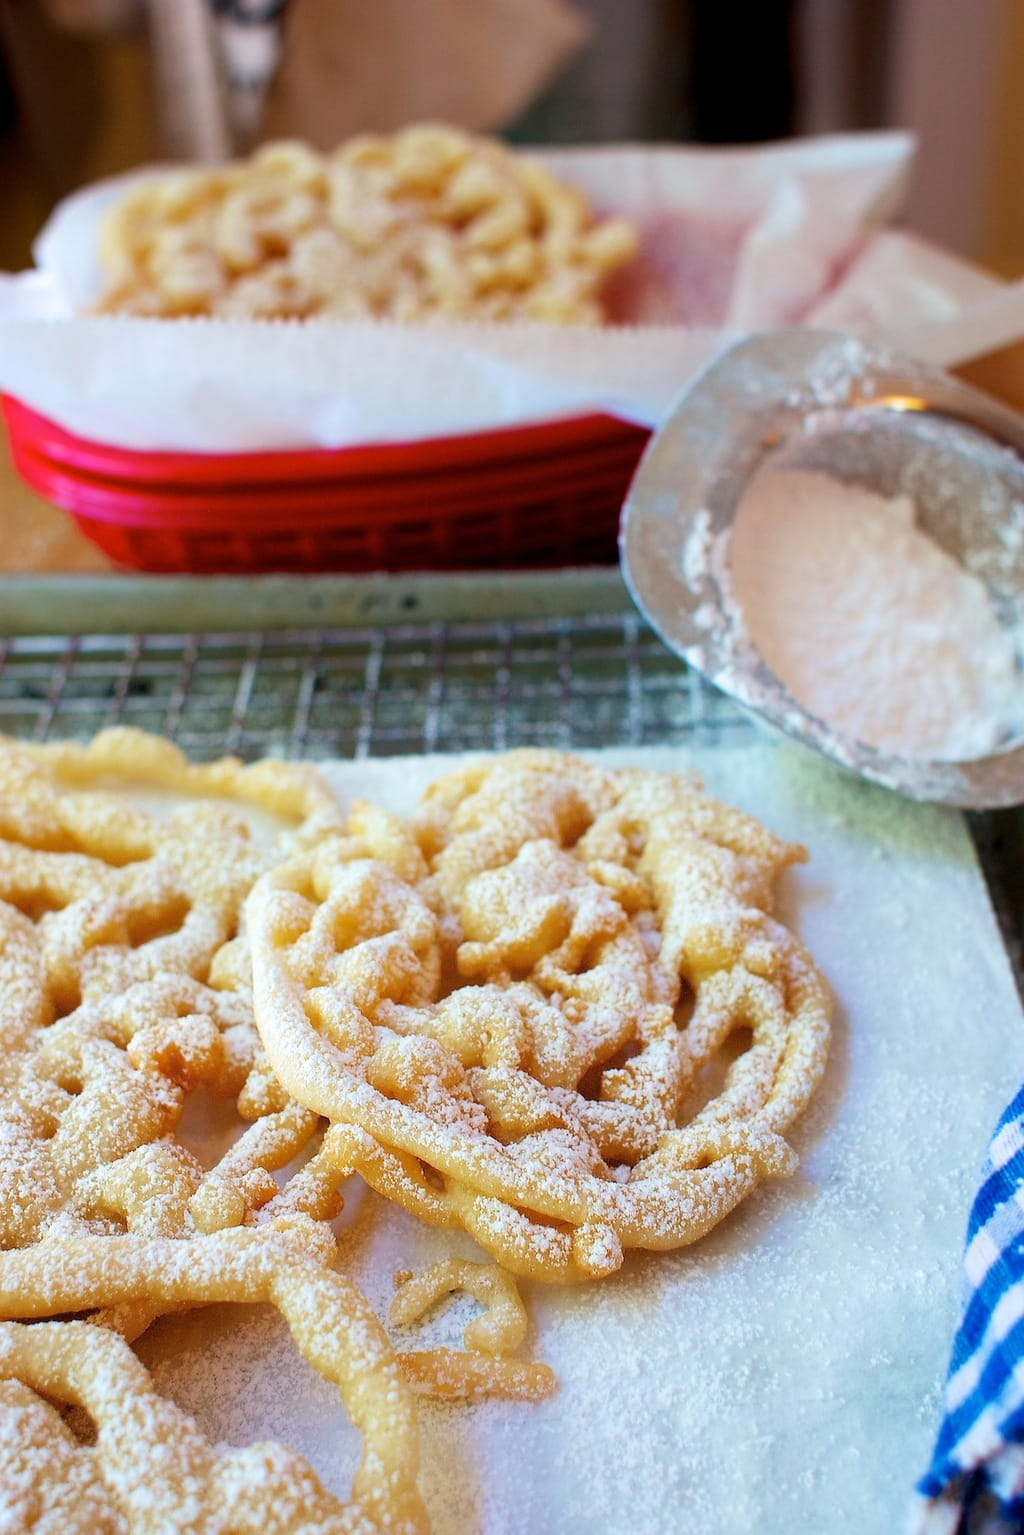 Funnel cakes cooling on a tray with powdered sugar.